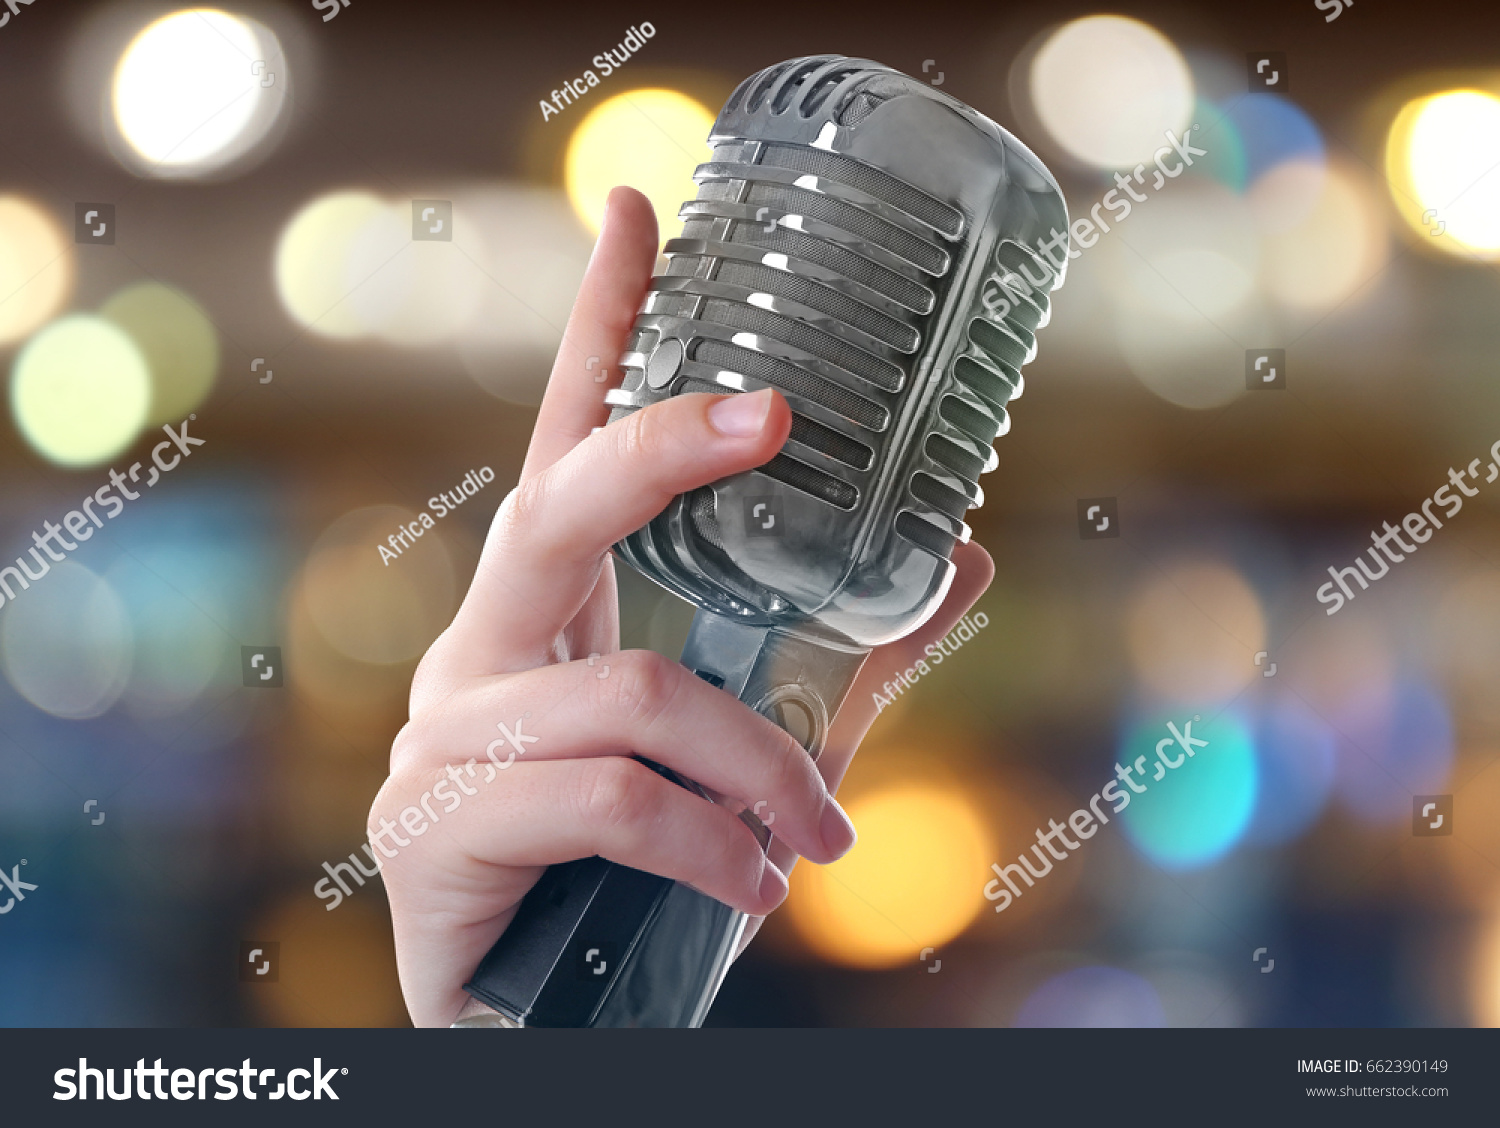 2e2f9d1ec102e Female hand with vintage microphone on blurred lights background. Concept  of Christmas music and songs